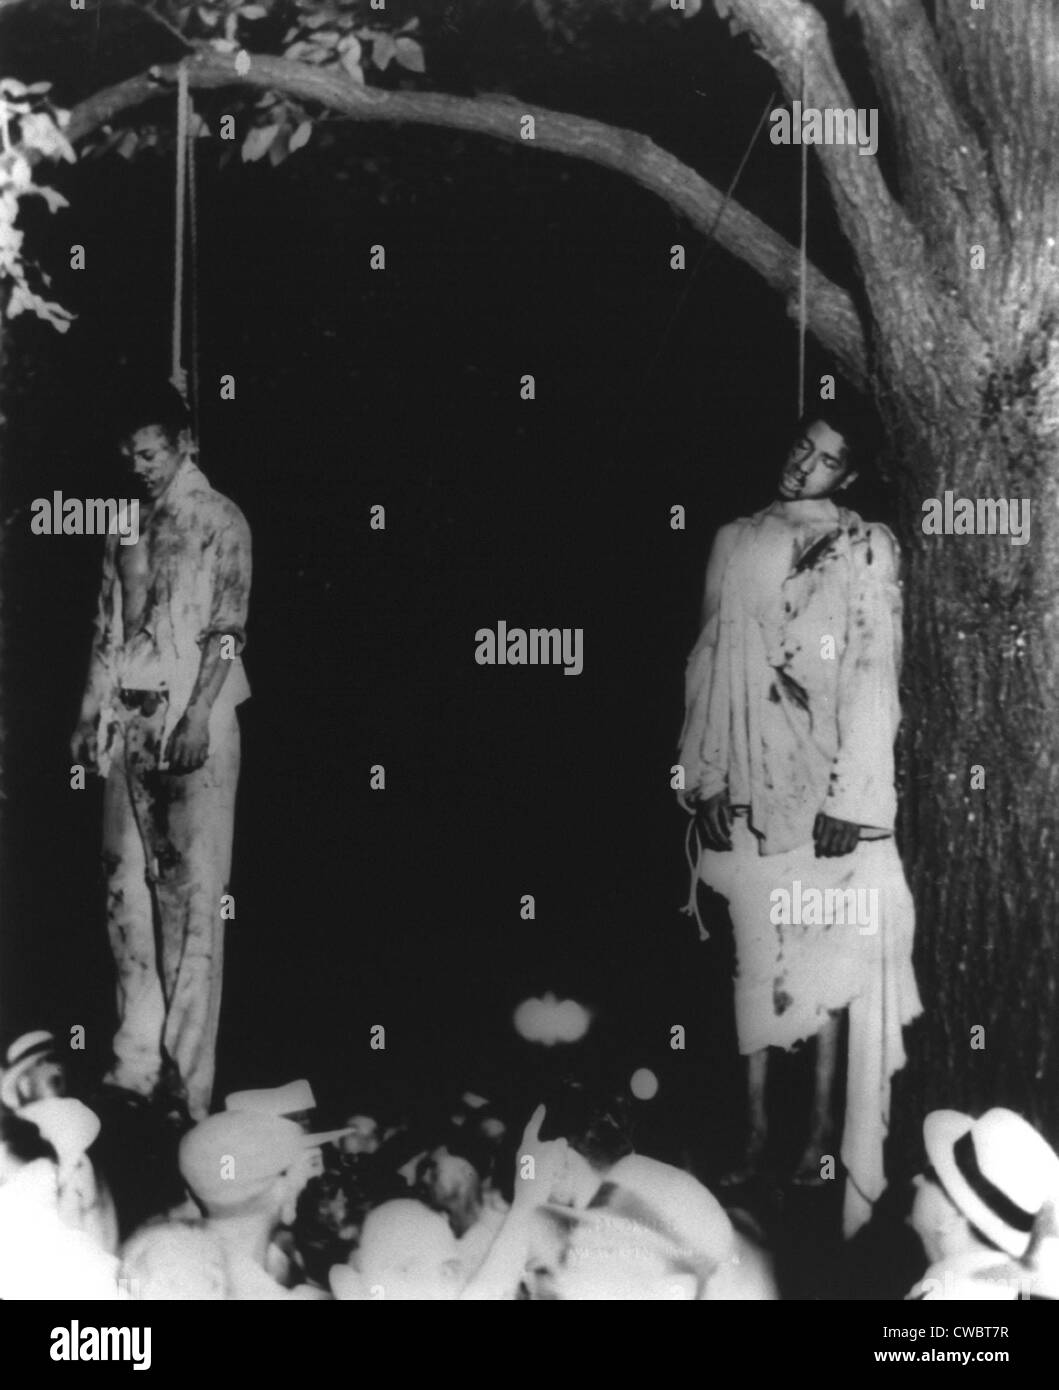 Two lynched African American men, hanging from tree in Marion, Indiana. Ca. 1930s. - Stock Image